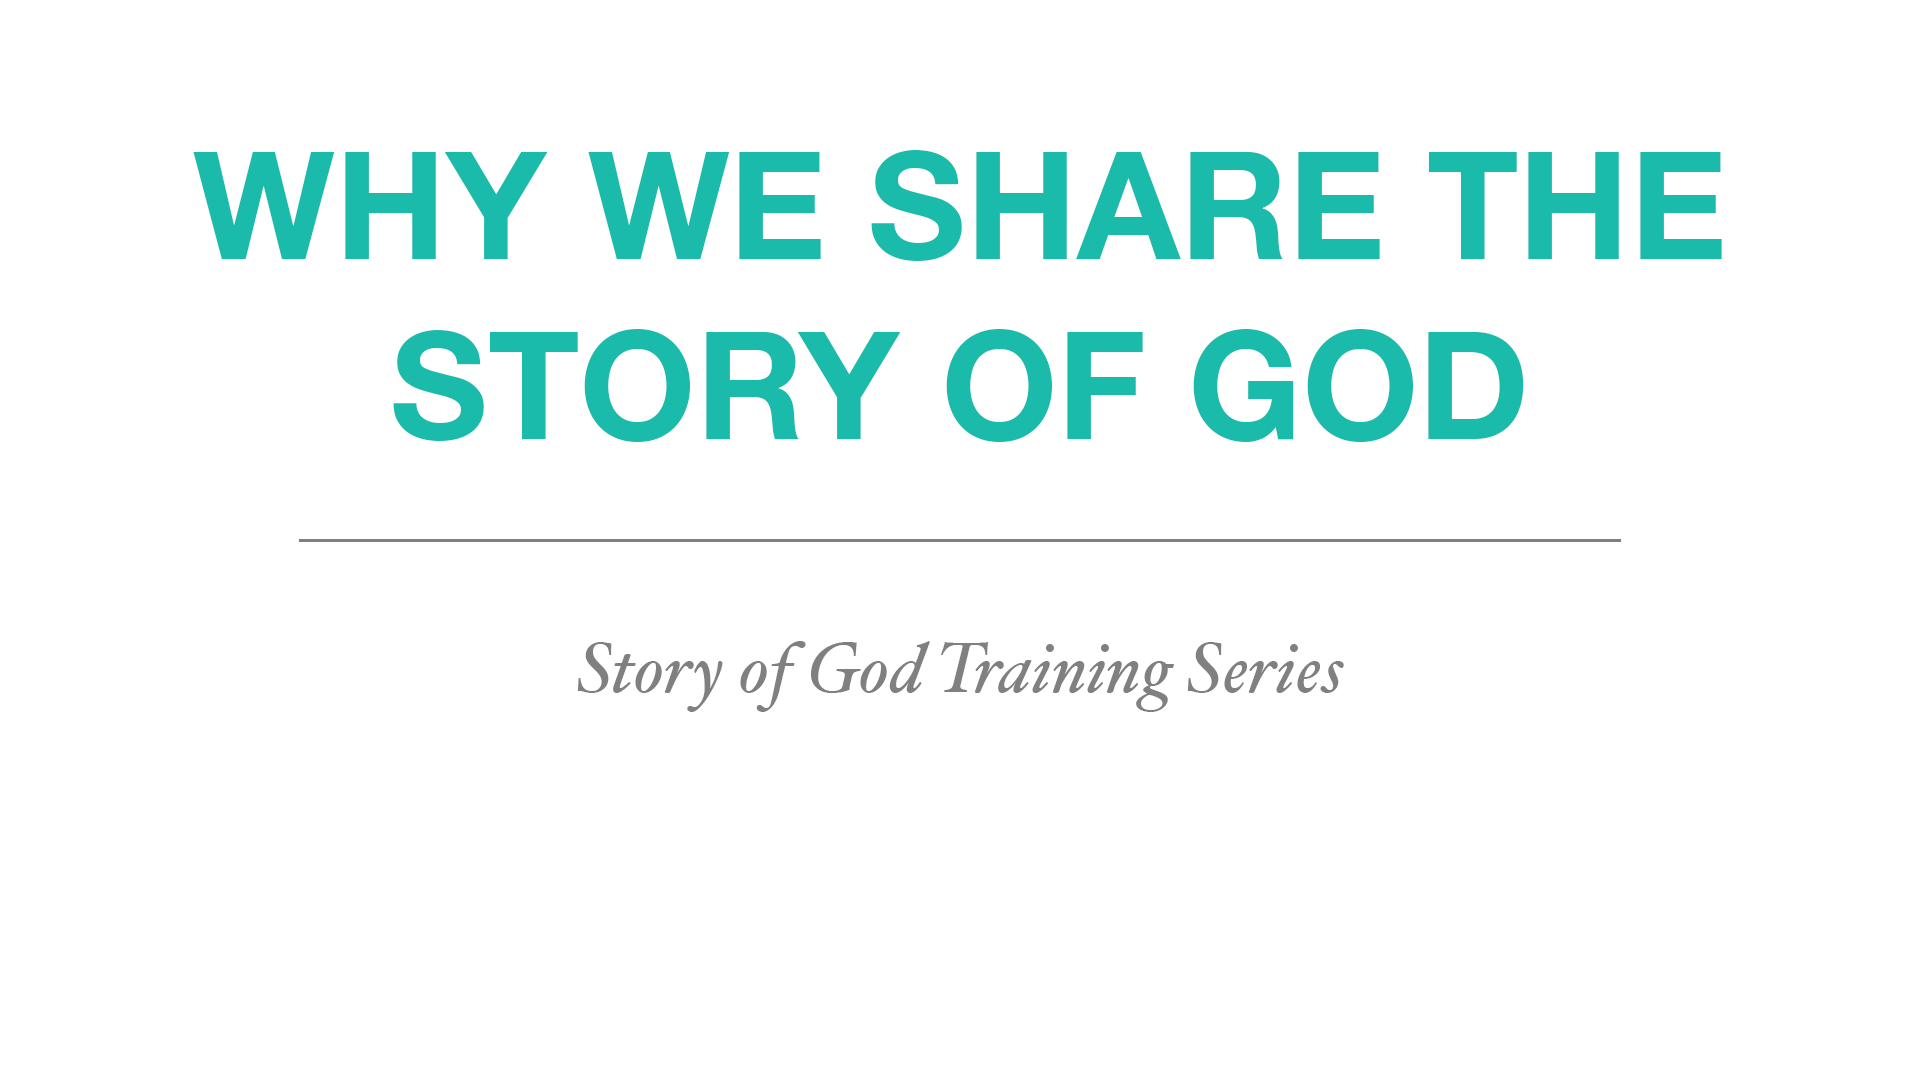 4 - Why We Share the Story of God